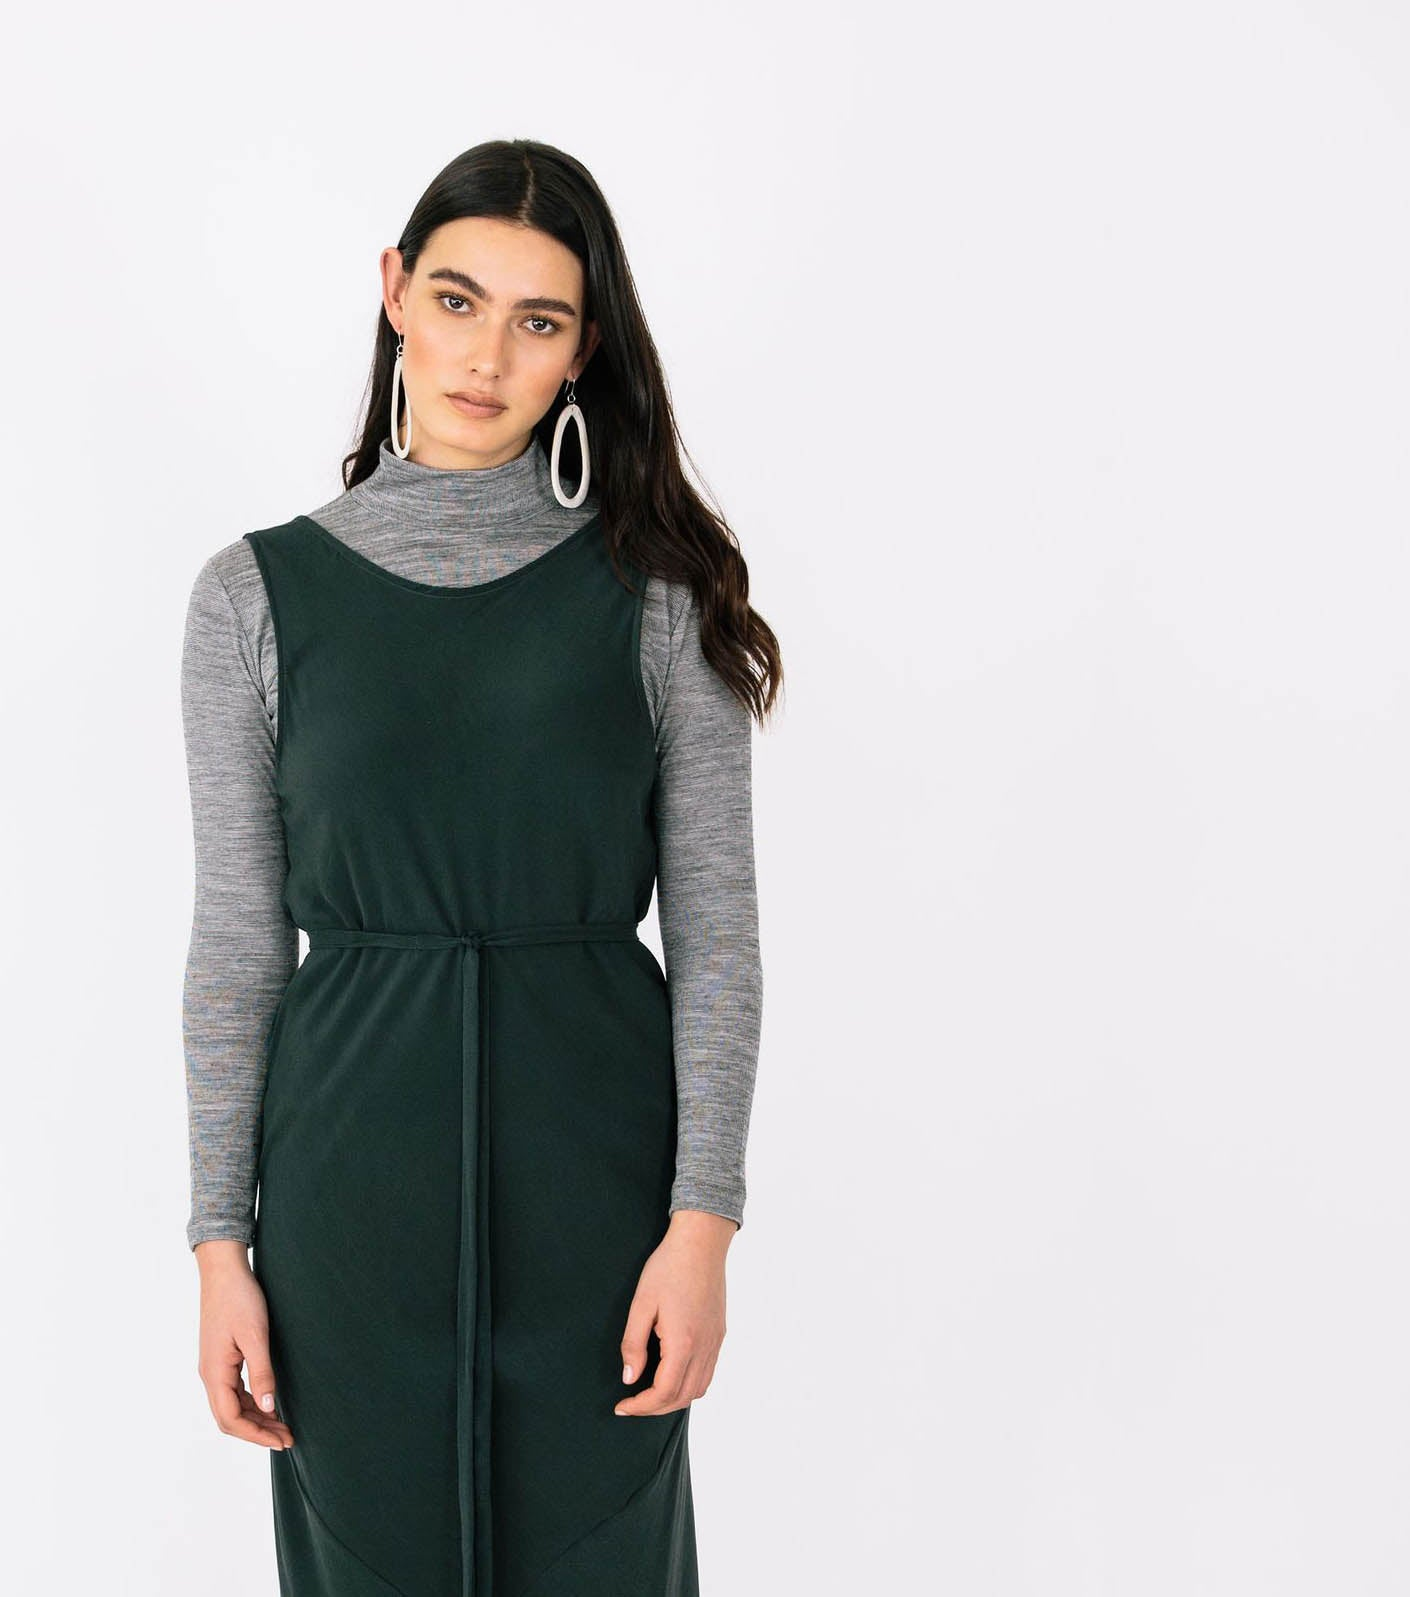 a picture of a white woman with long dark hair wearing a dark green dress layered over the top of a grey turtleneck